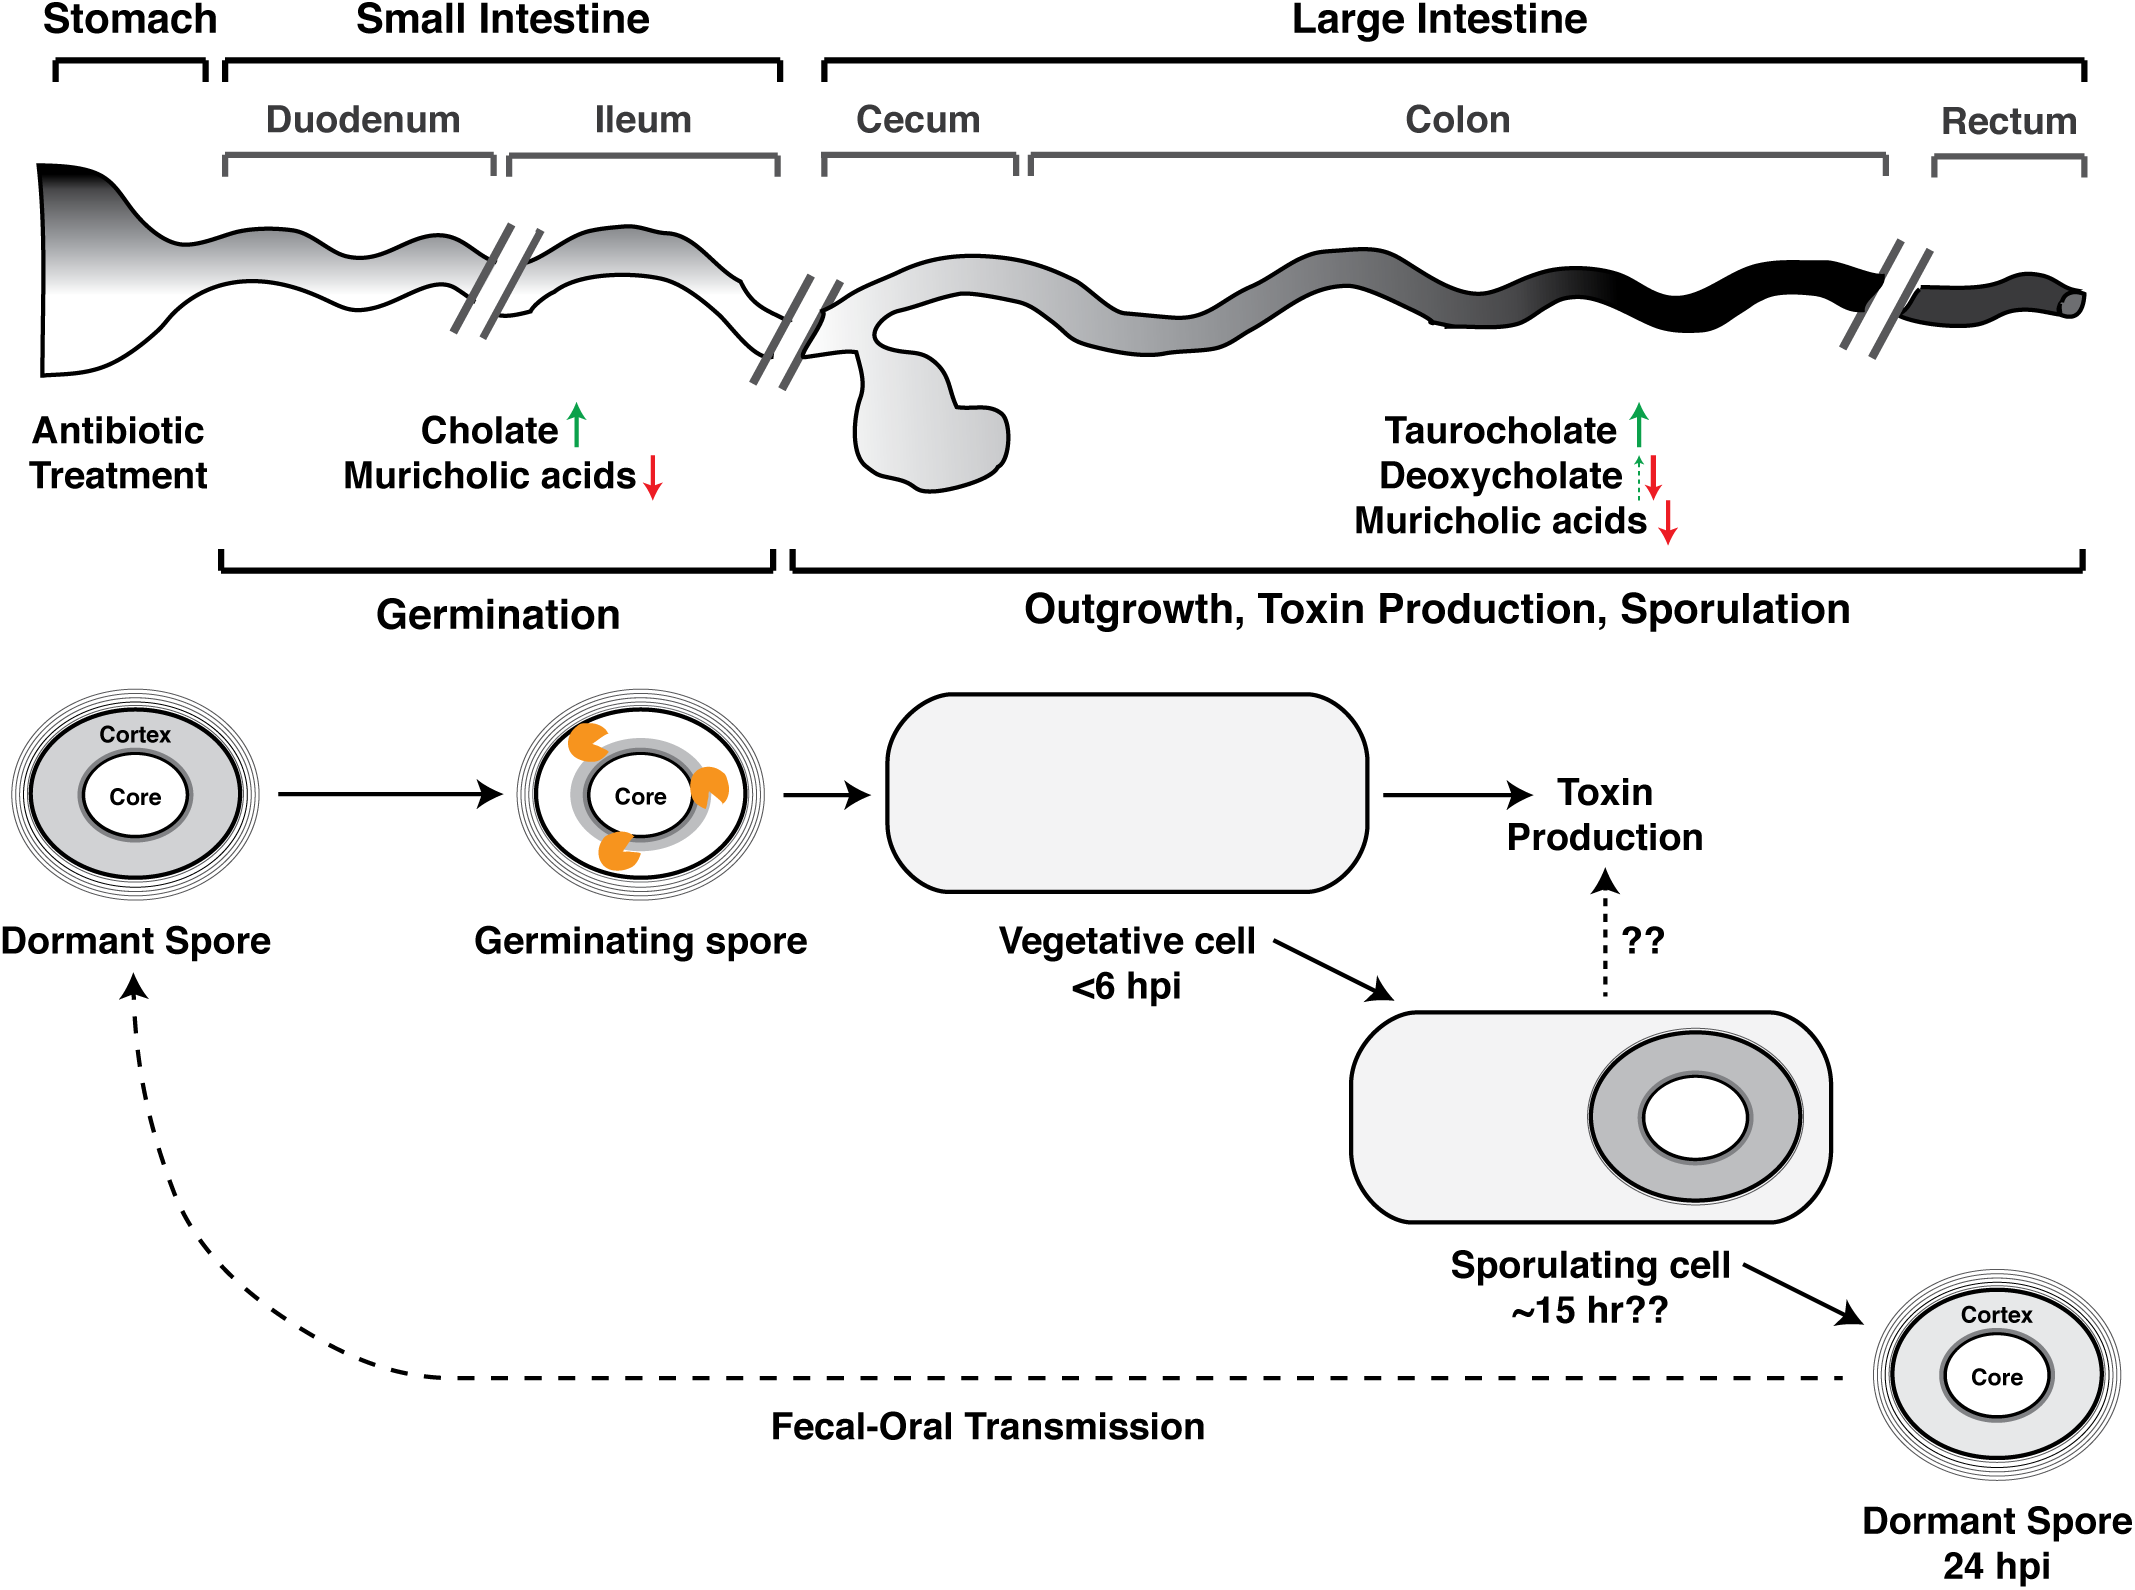 Developmental life cycle of <i>Clostridium difficile</i> during infection.